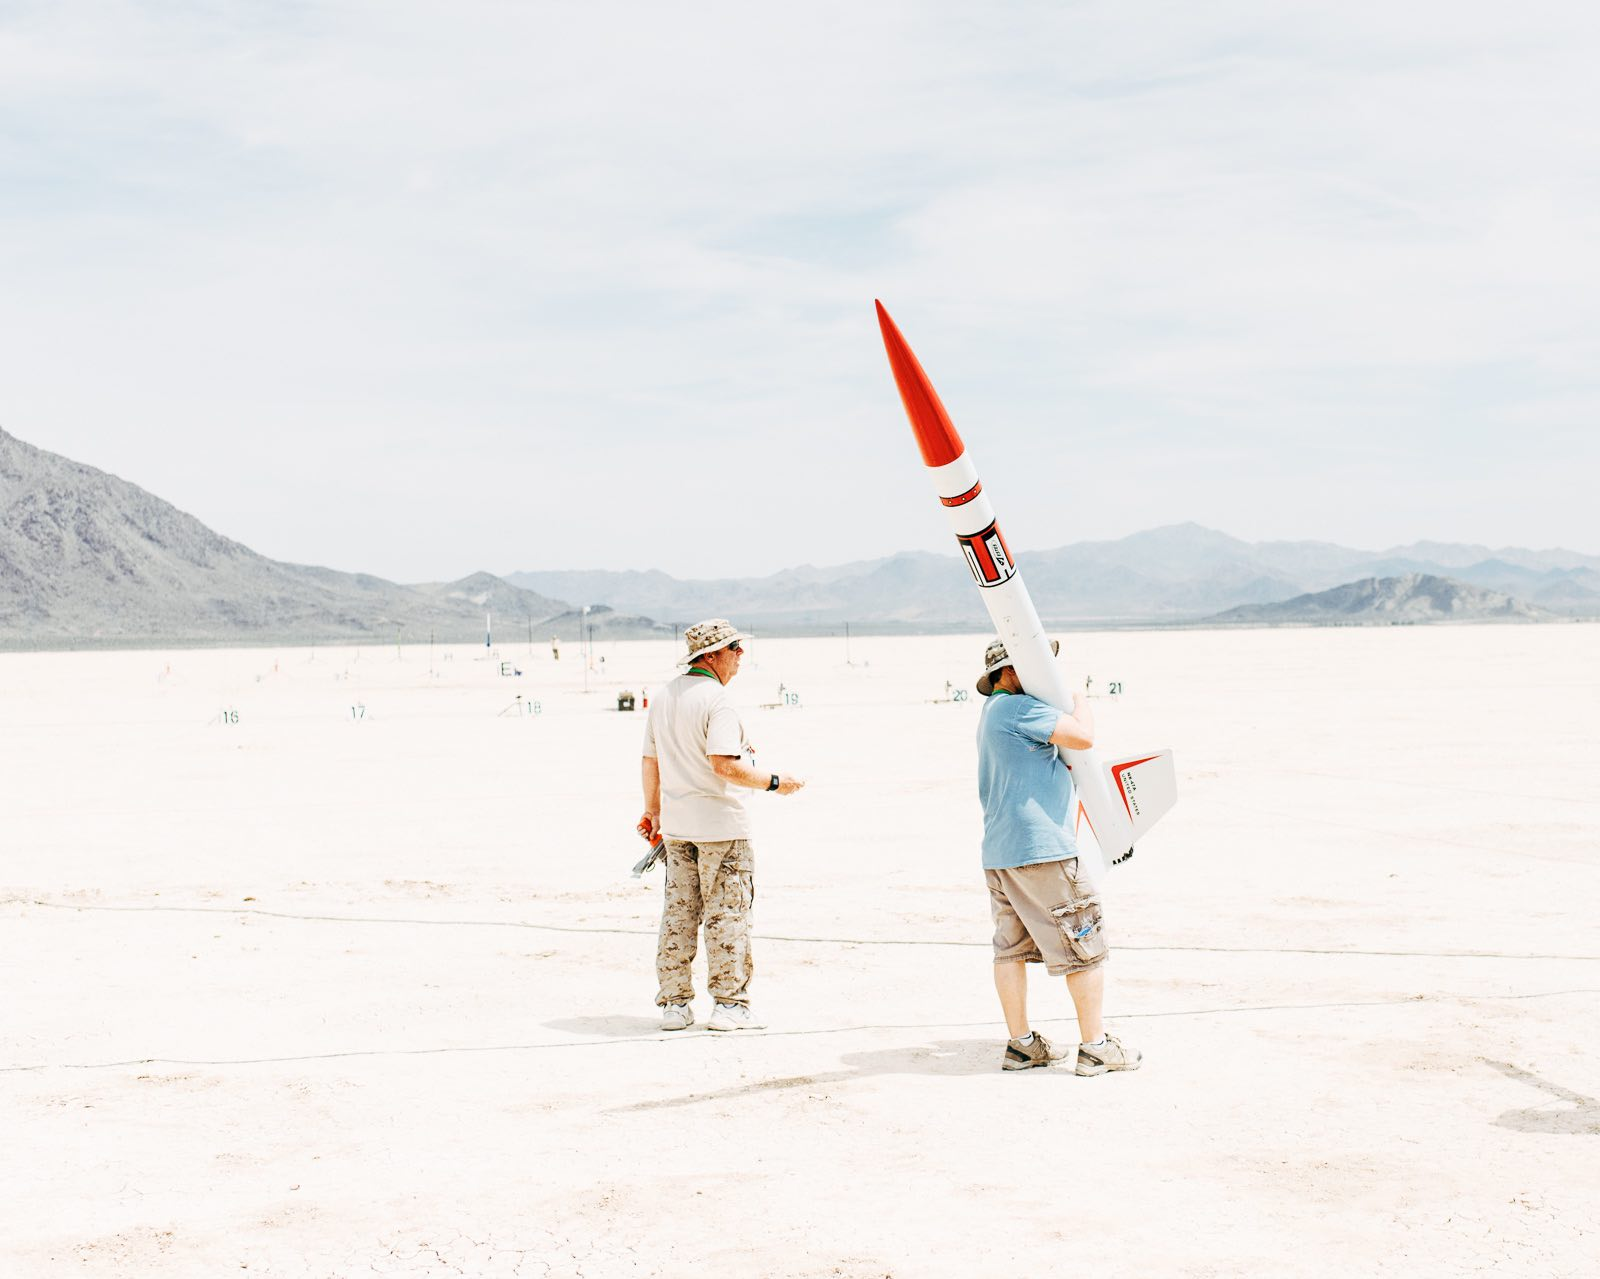 Spectacular photos of the nutty high-powered model rocket